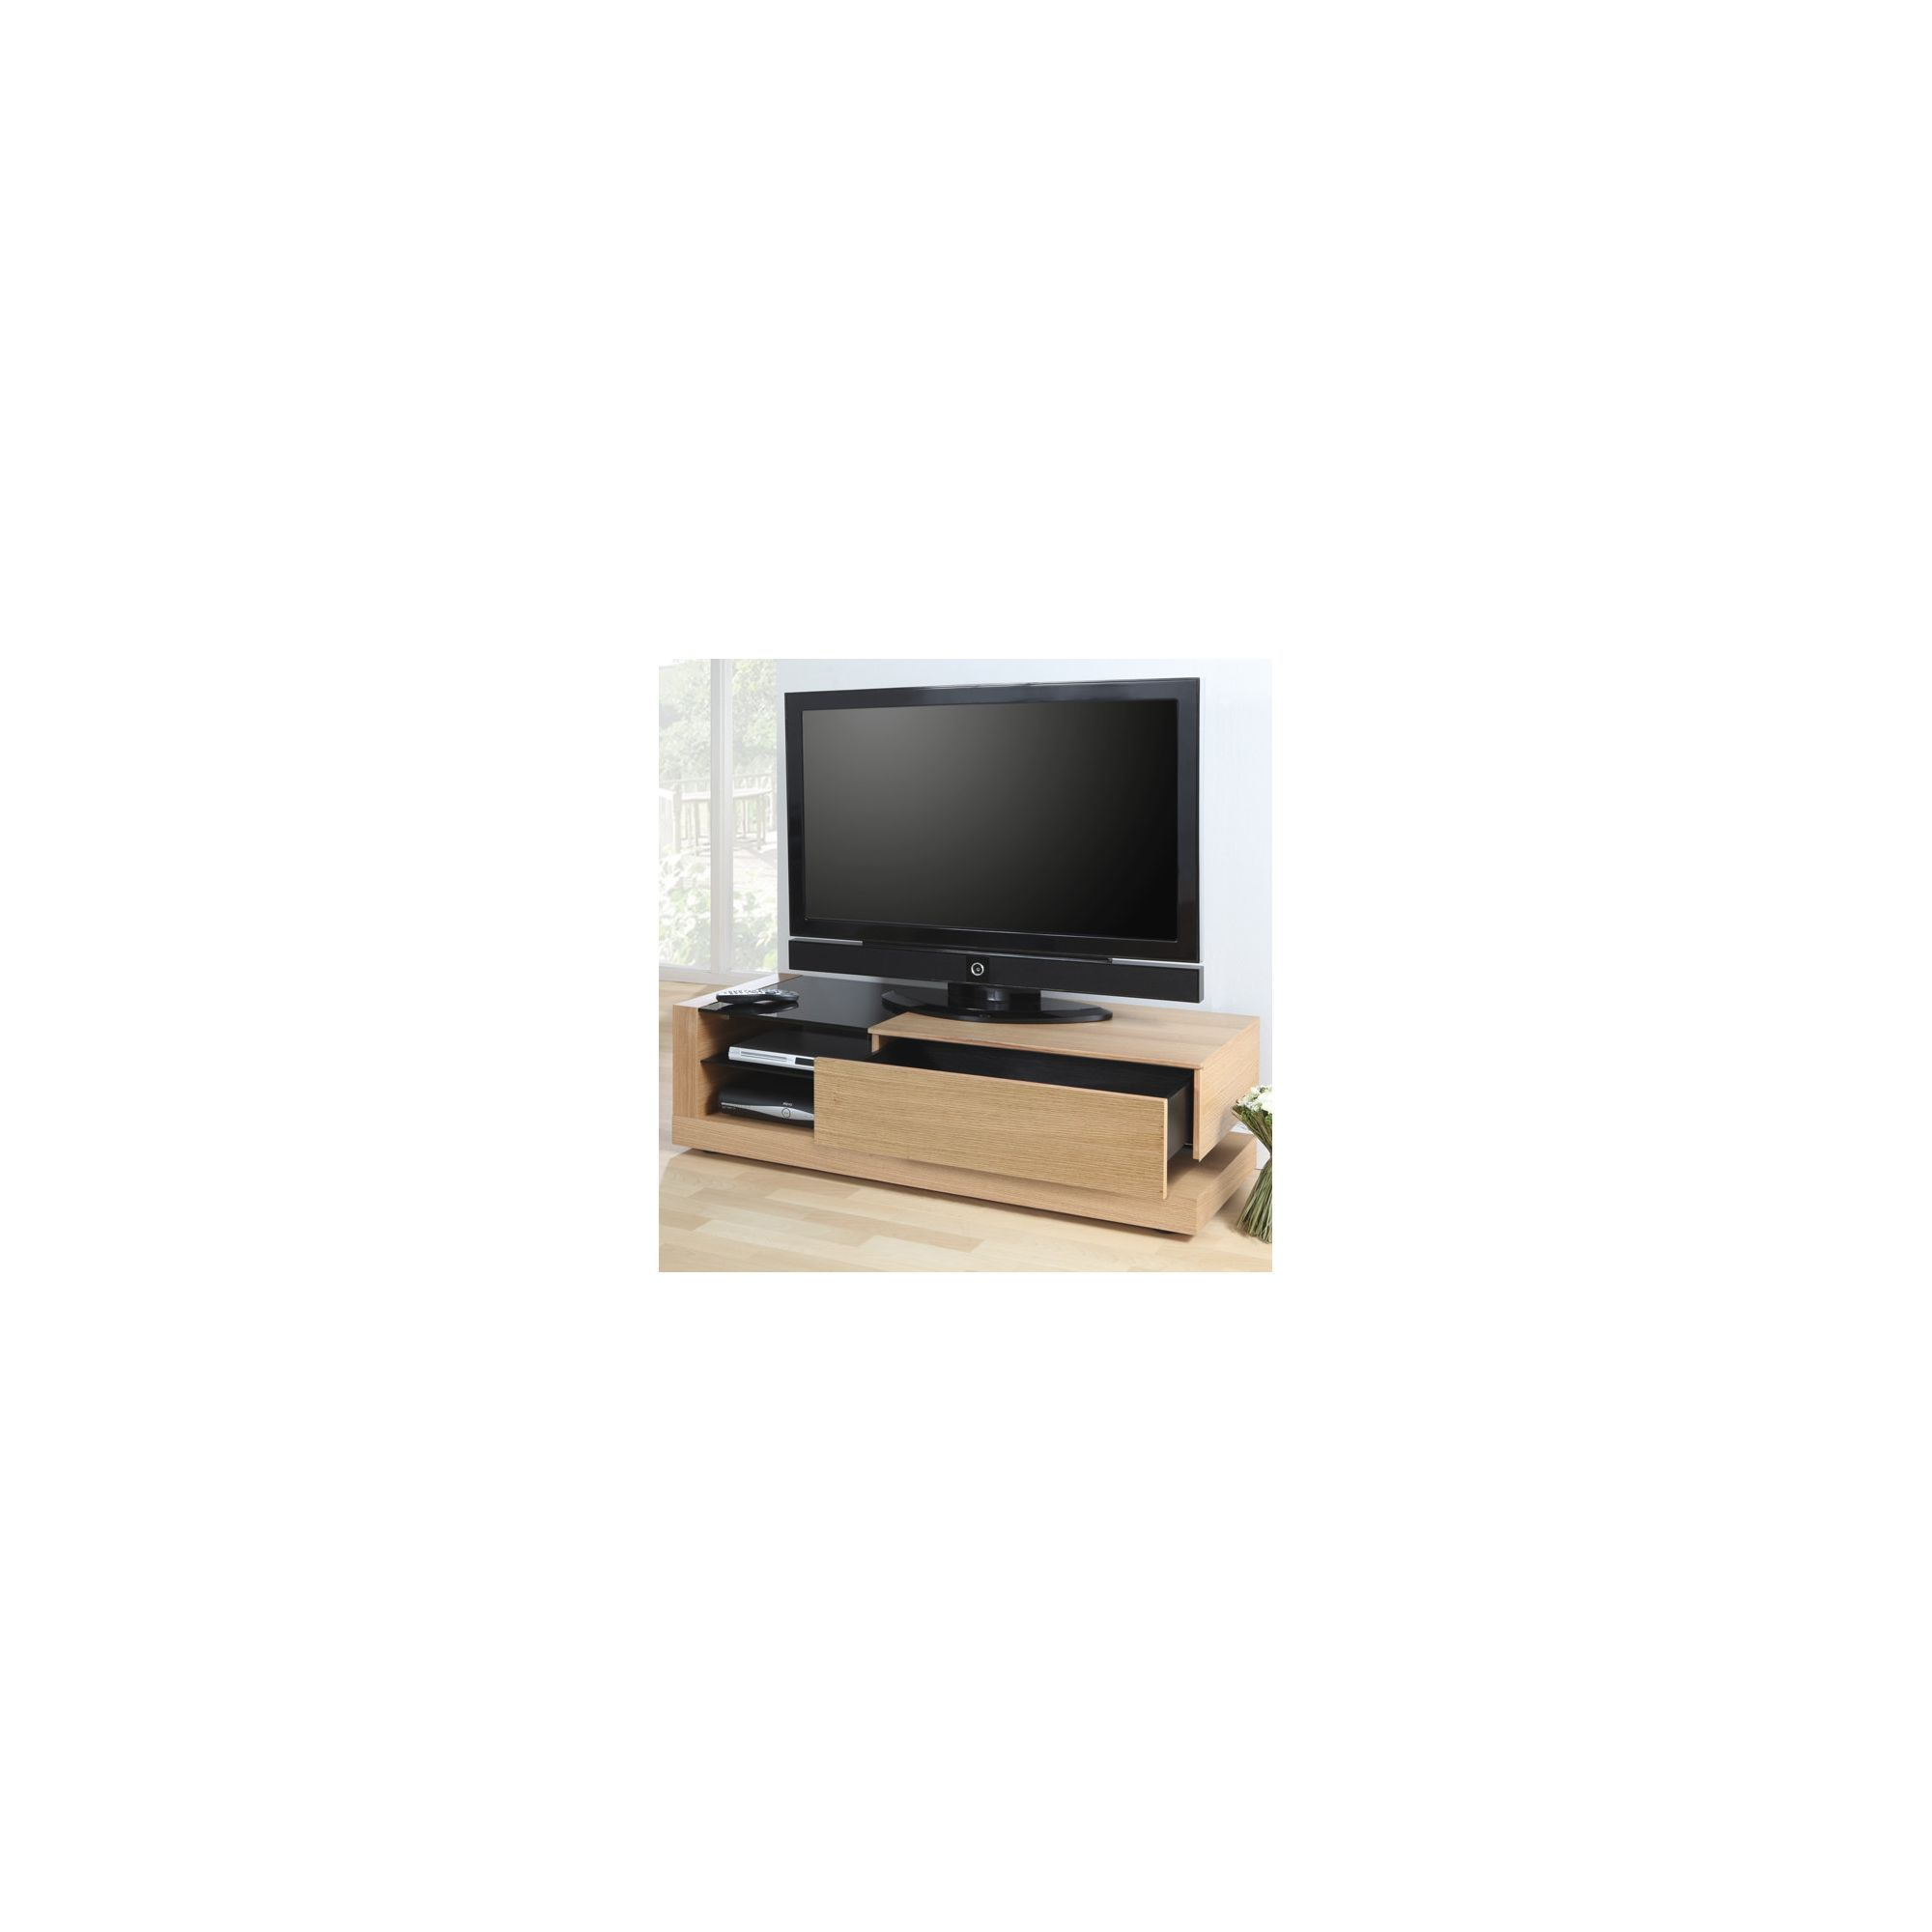 Jual Furnishings Cube TV Cabinet - Oak - Clear at Tesco Direct